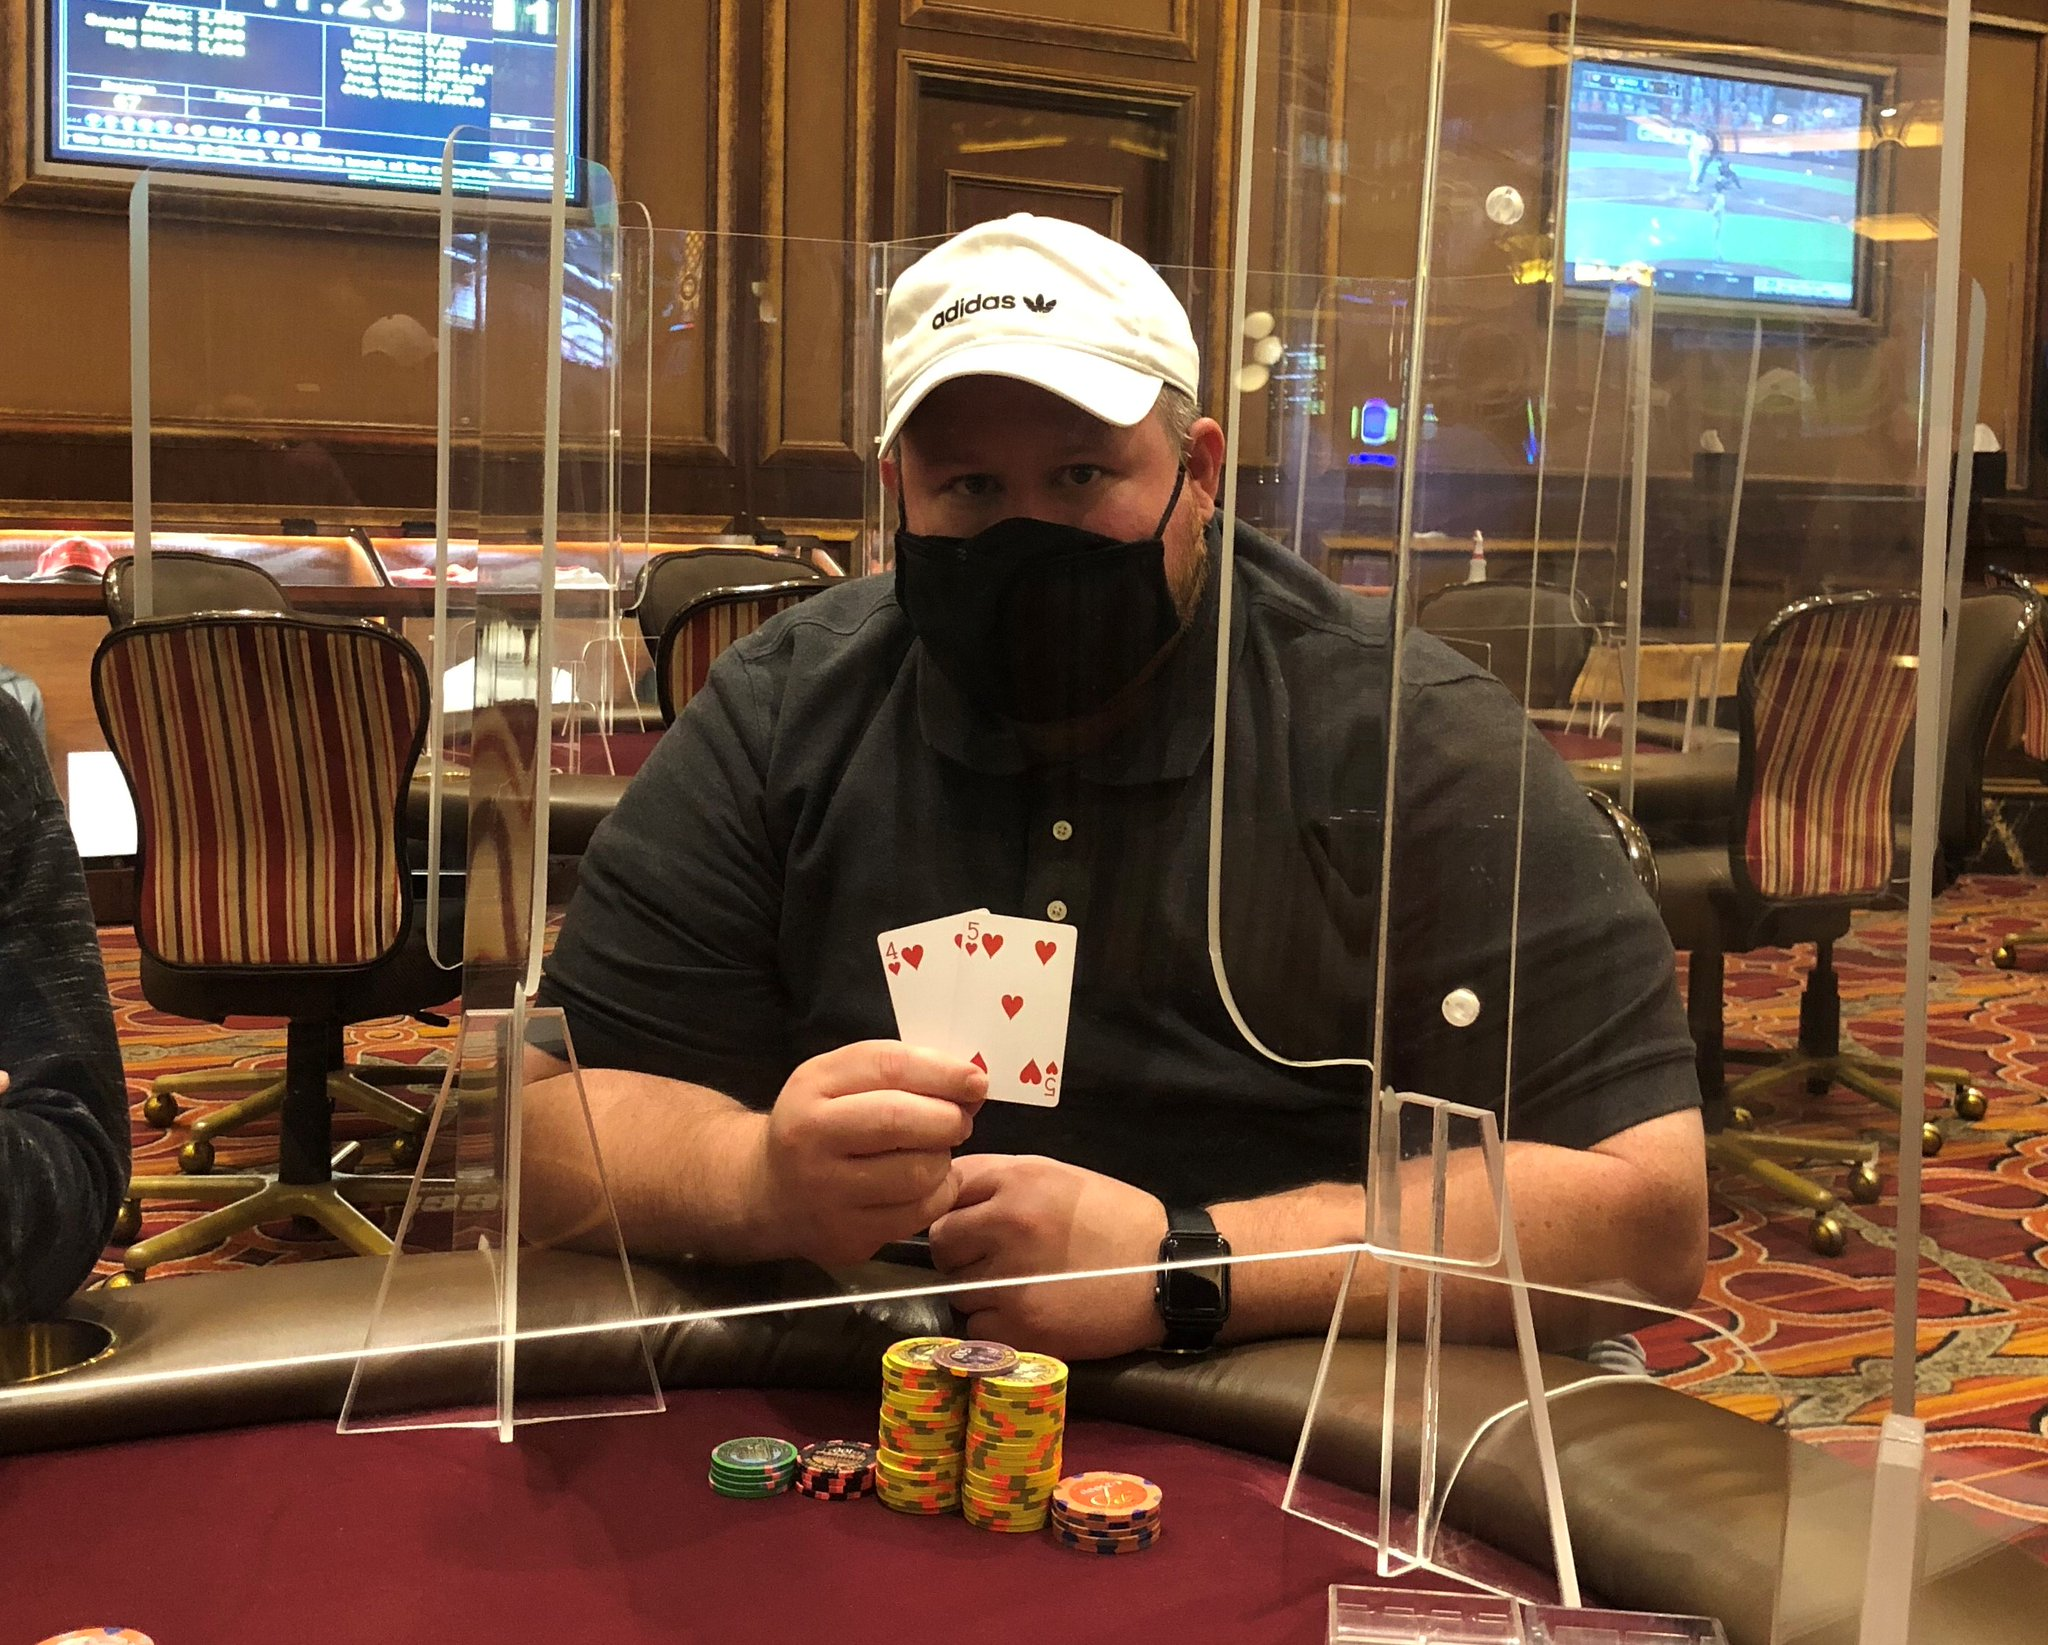 Venetian Poker Room On Twitter 332 000 Bad Beat Jackpot Venetianpoker Congratulations To Adam Lister Who With The 4 5 Hearts Lost To The 9 10 Hearts Of Yusuke Sawauchi On A Board Of 6 7 8